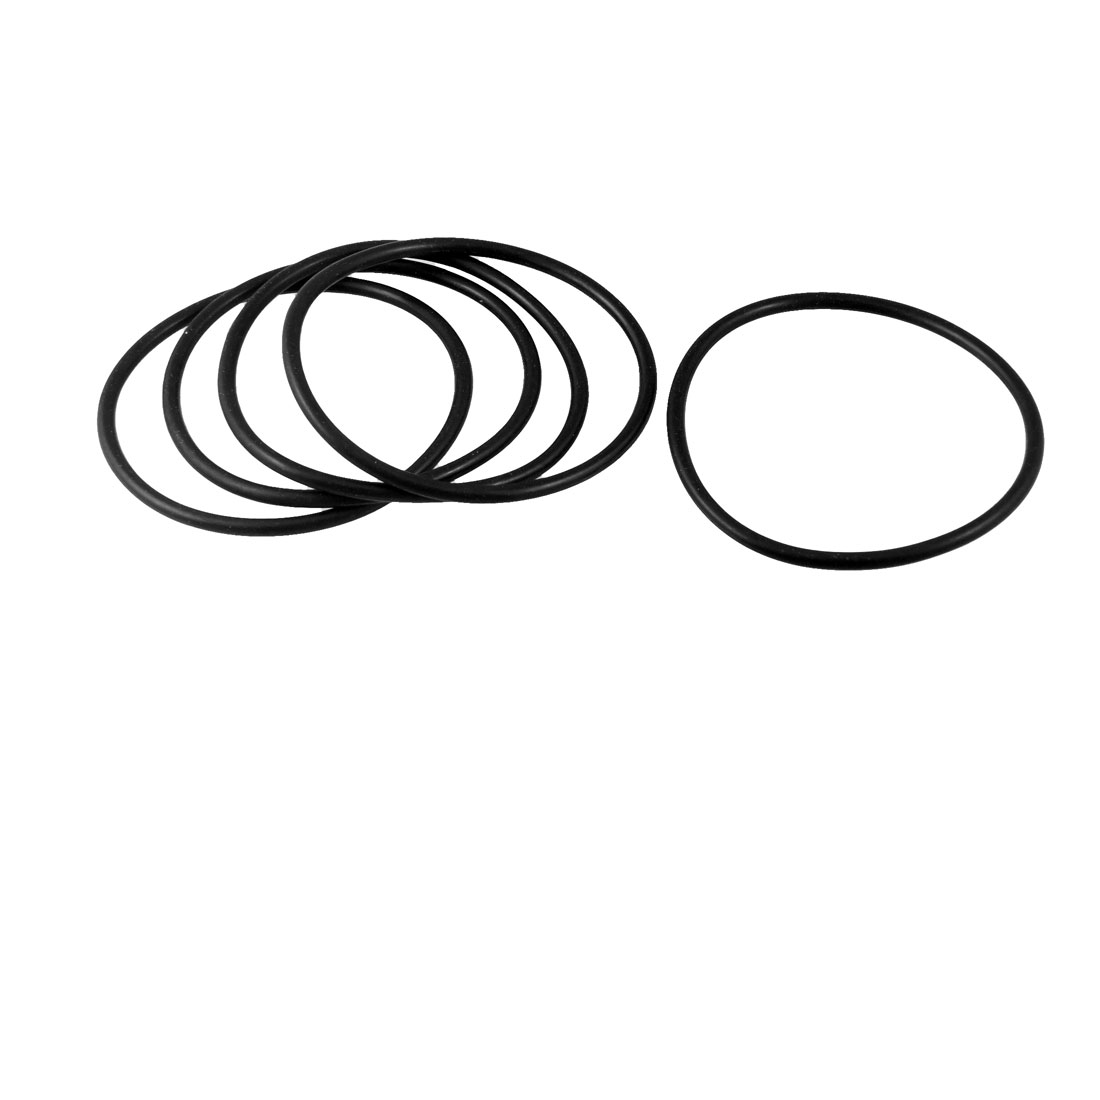 67mm x 3.5mm x 60mm Rubber Sealing Oil Filter O Rings Gaskets 5 Pcs